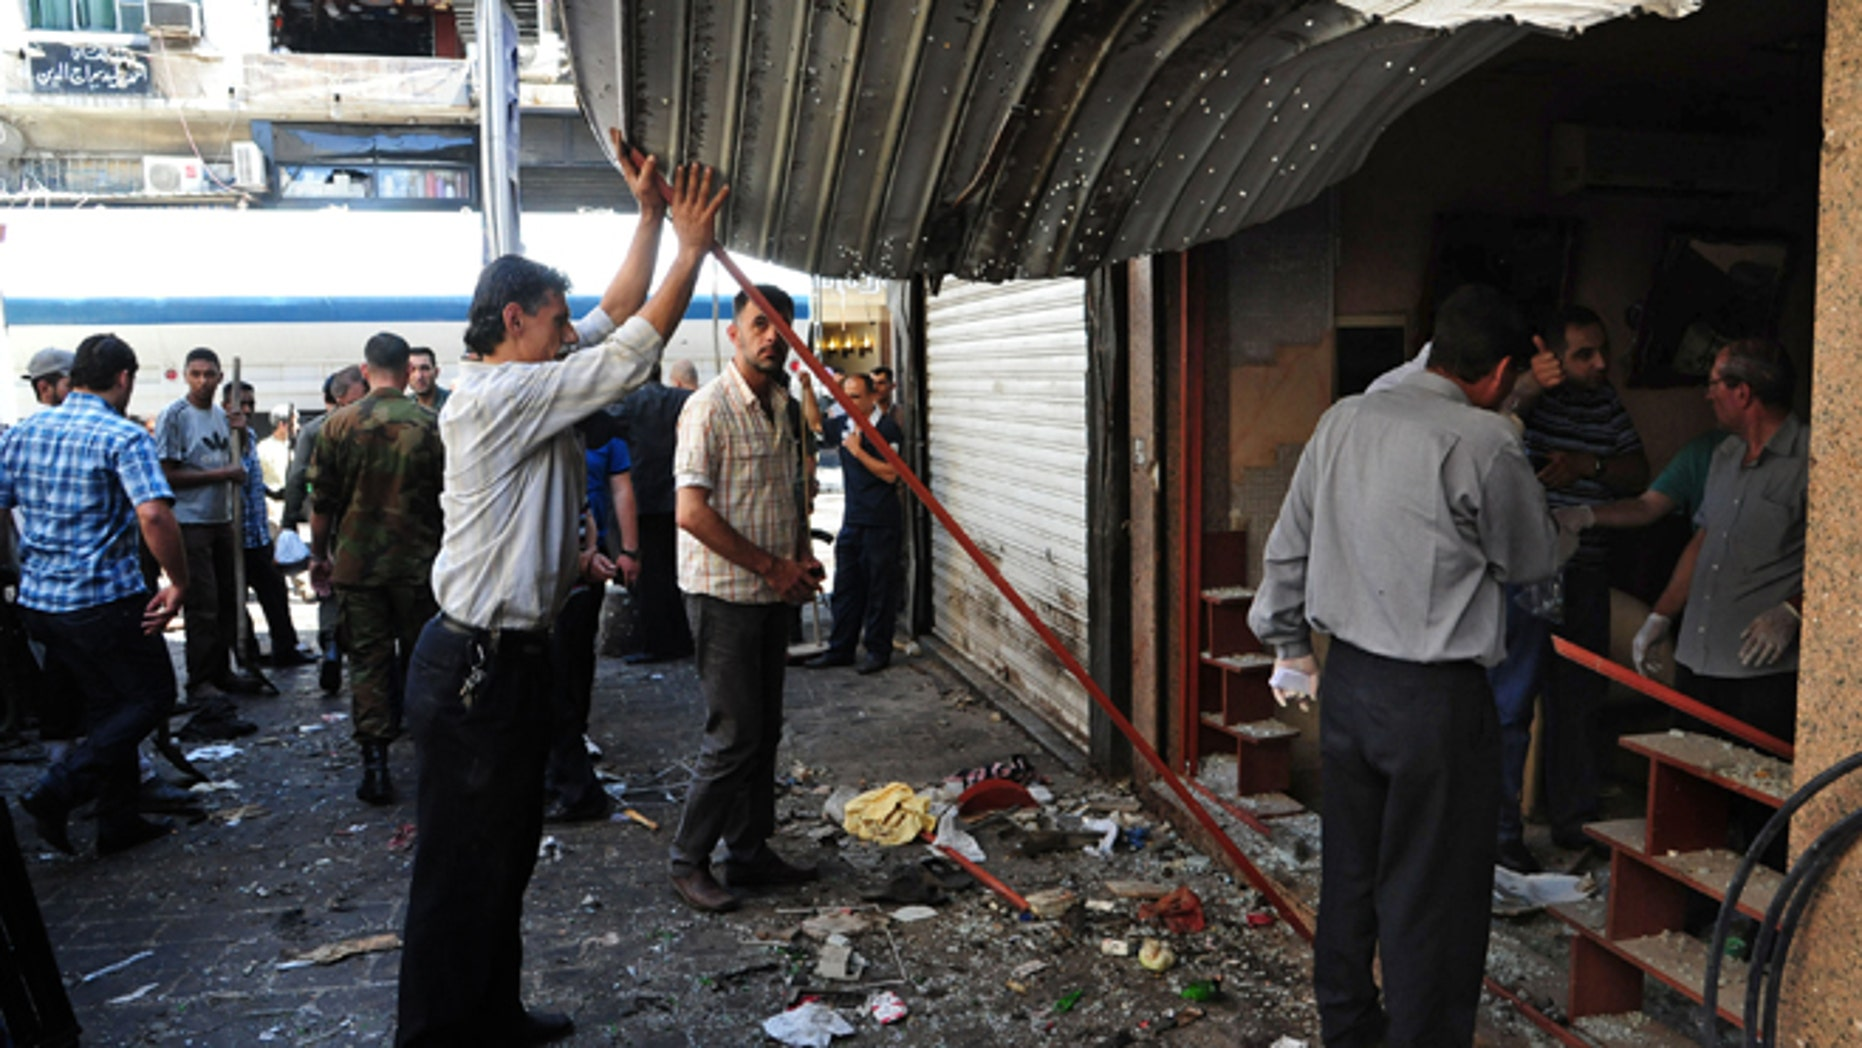 June 11, 2013: In this photo released by the Syrian official news agency SANA, Syrians inspect a damaged shop at a scene of two explosions in the central district of Marjeh, Damascus, Syria.